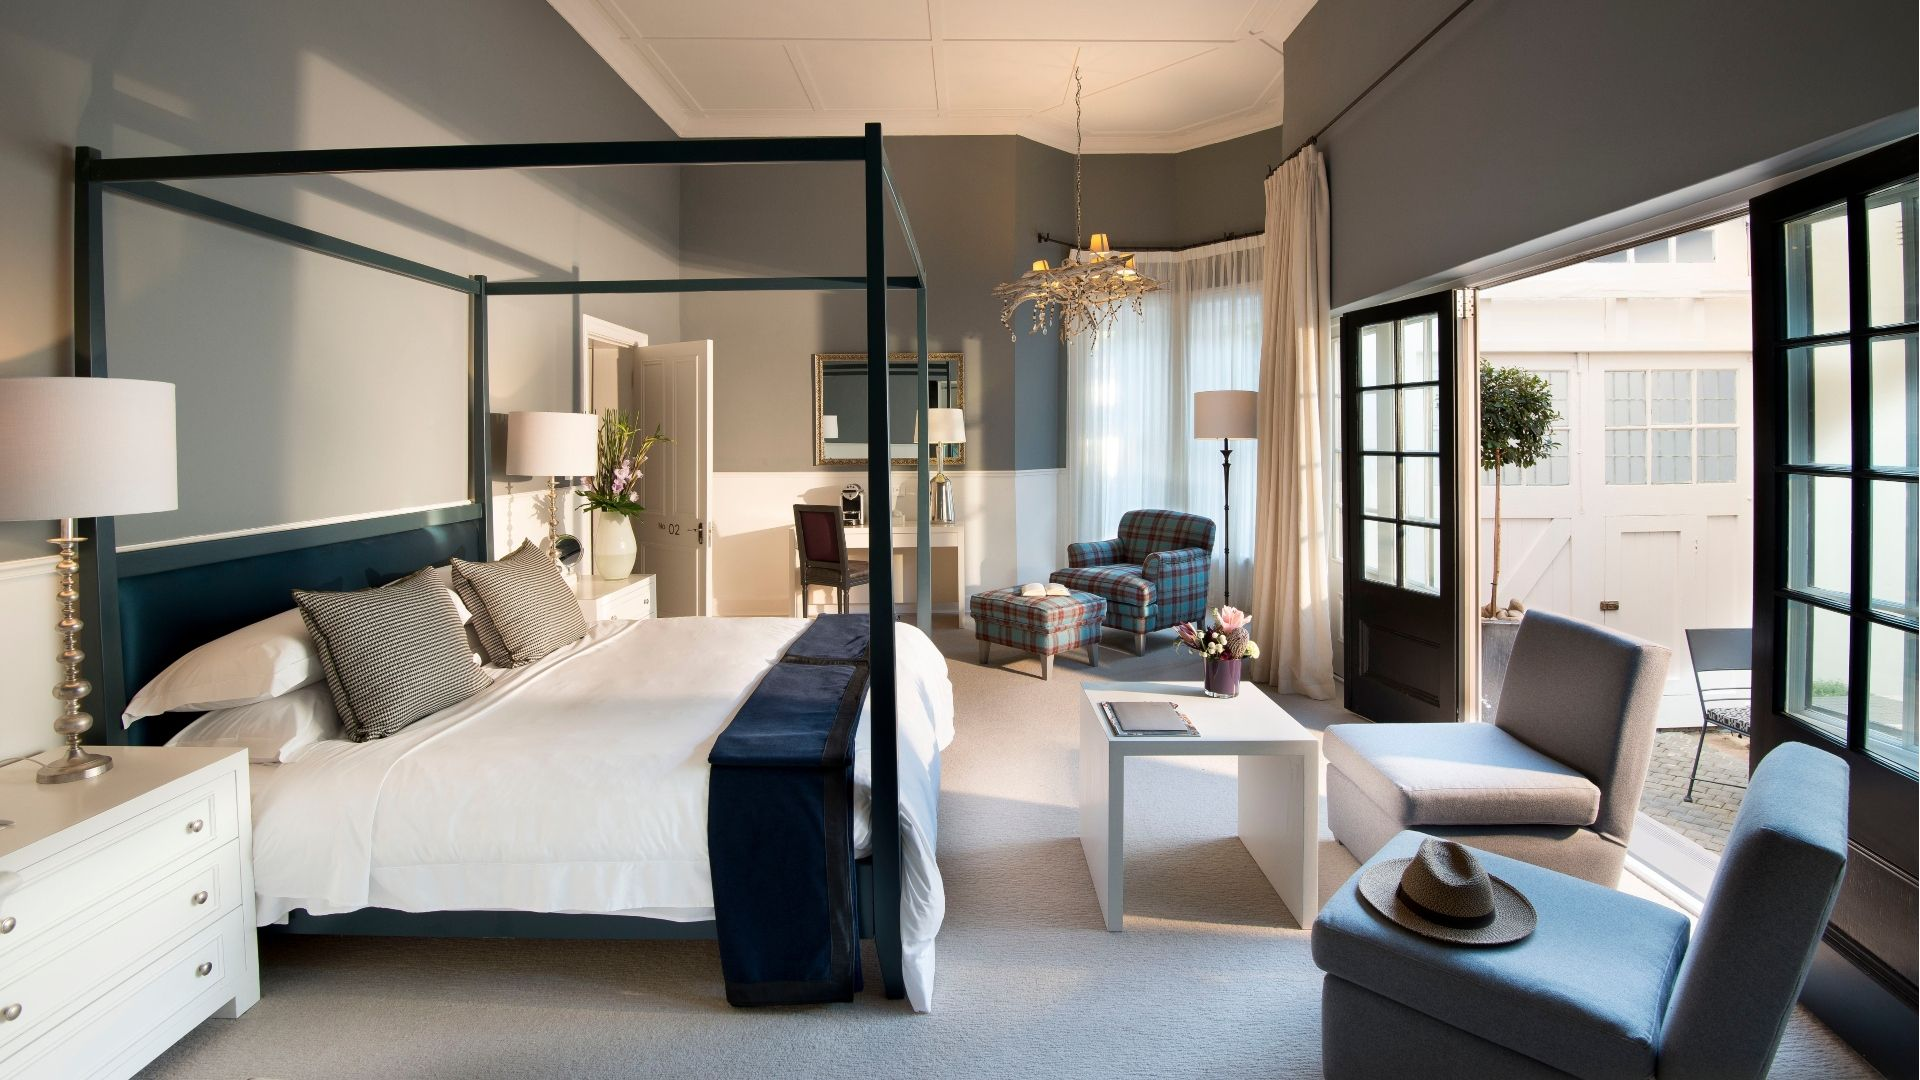 Beautifully decorated Luxury rooms